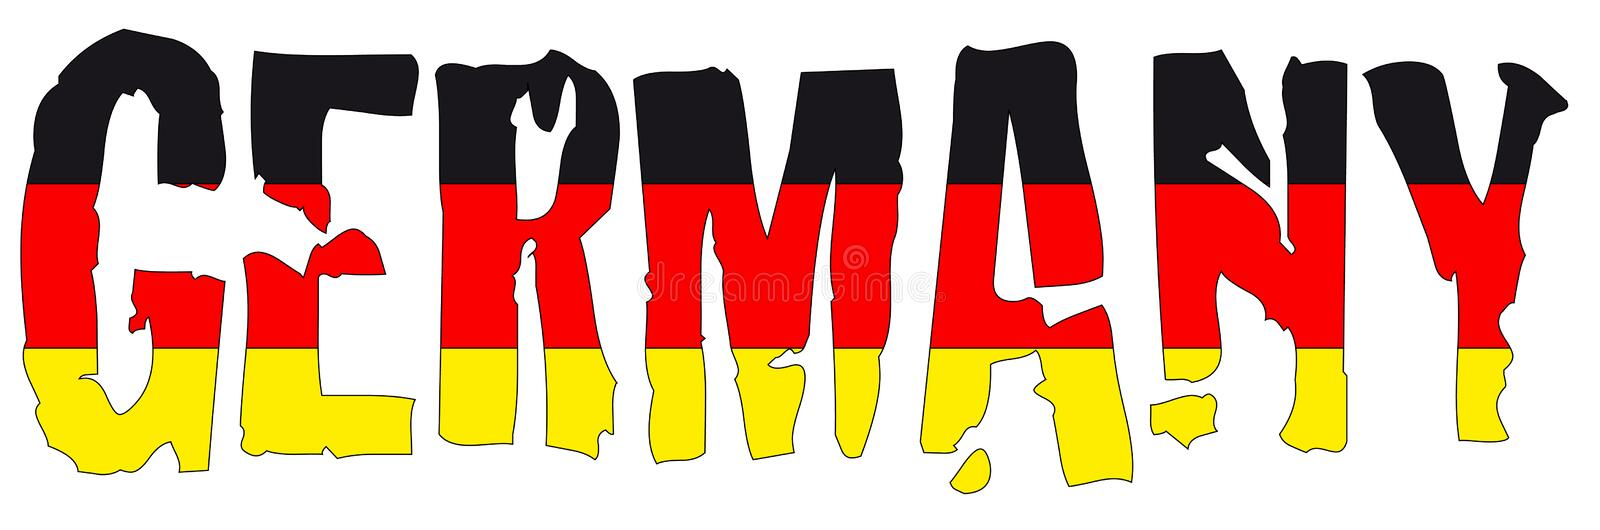 Germany name and flag stock illustration